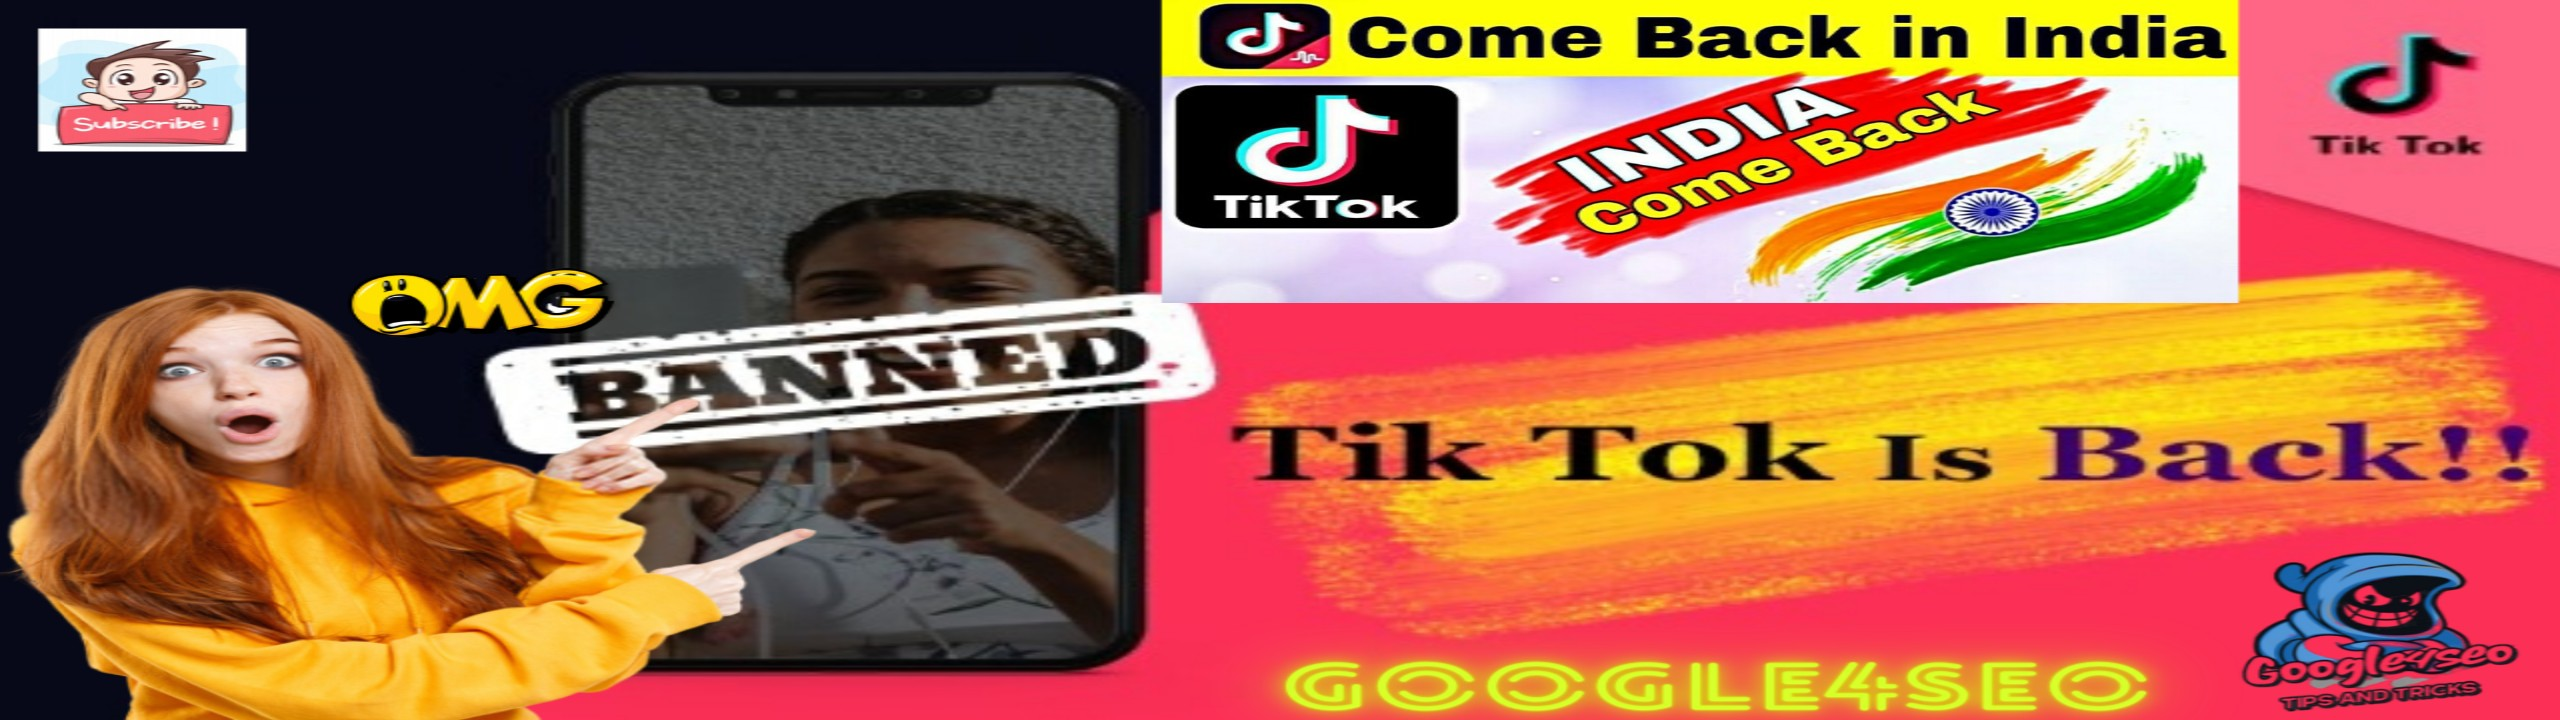 Tiktok Is Back l Great News For Tiktokers After 22 July l Returning Tiktok In India Google4seo